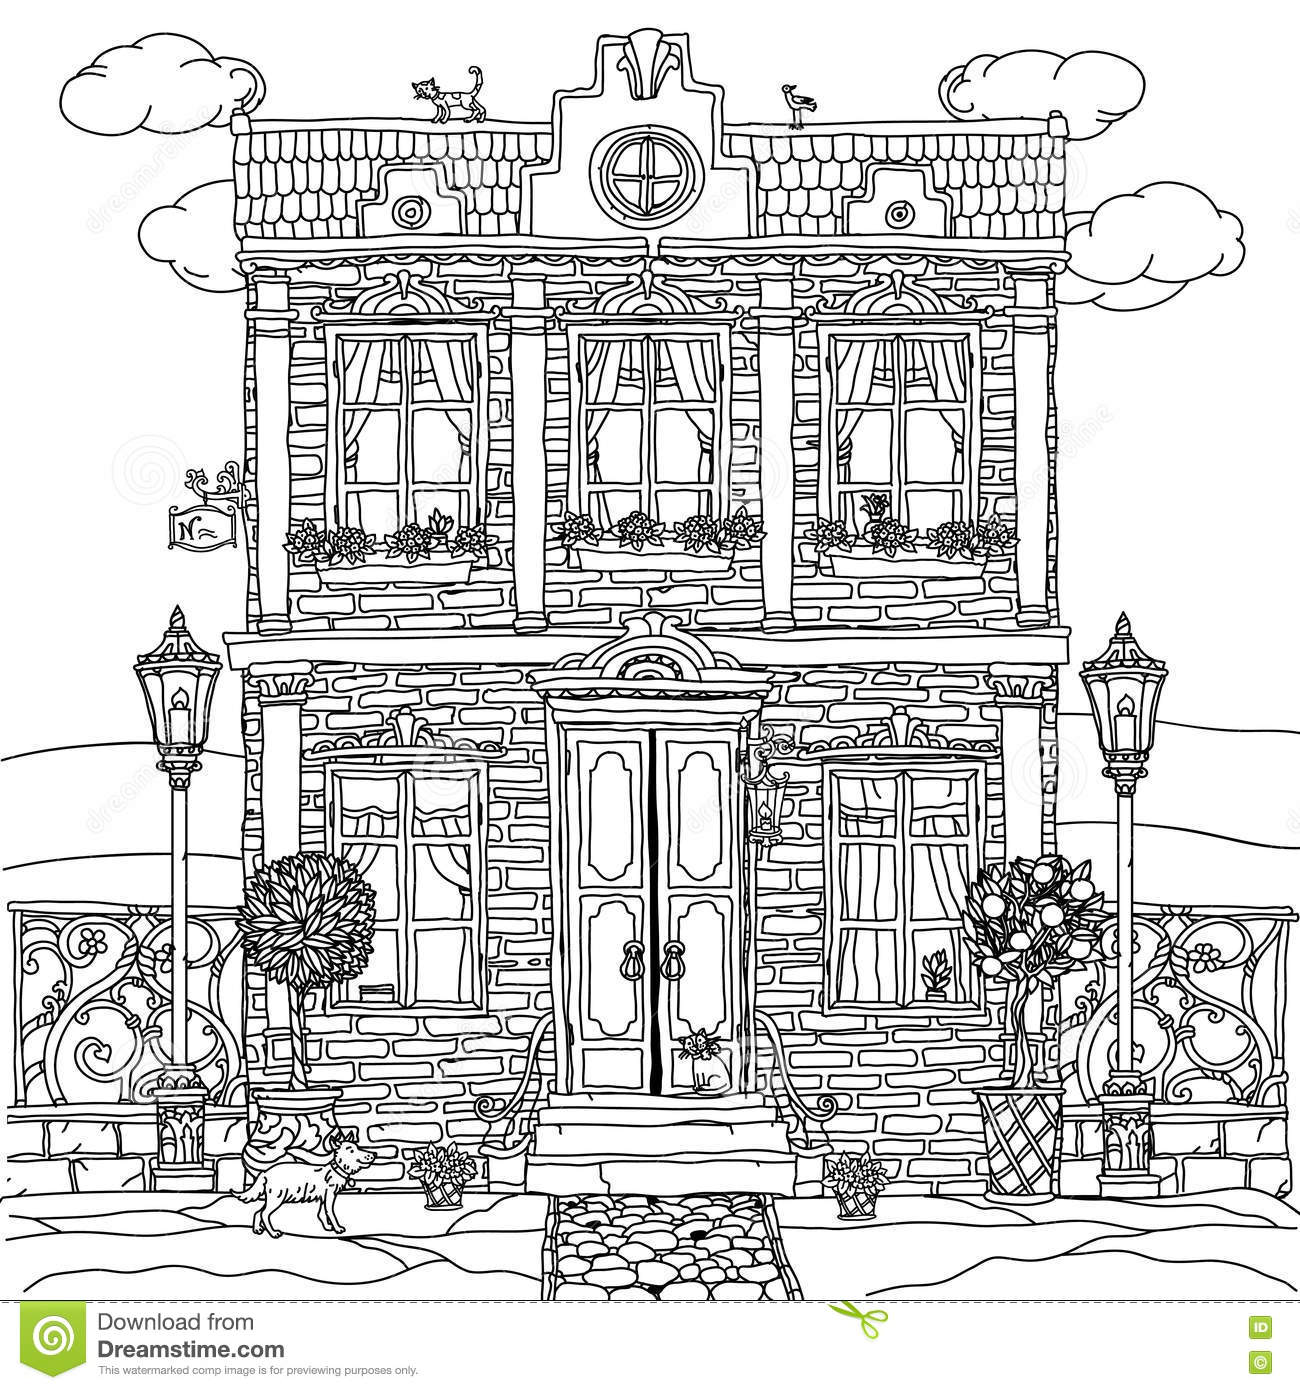 Zen colouring advanced art therapy collector edition - Zen Colouring Book Art Therapy Frontage Of A House With Flowers Cartoon Vector Cartoondealer Download Image Zen Colouring Collectors Edition